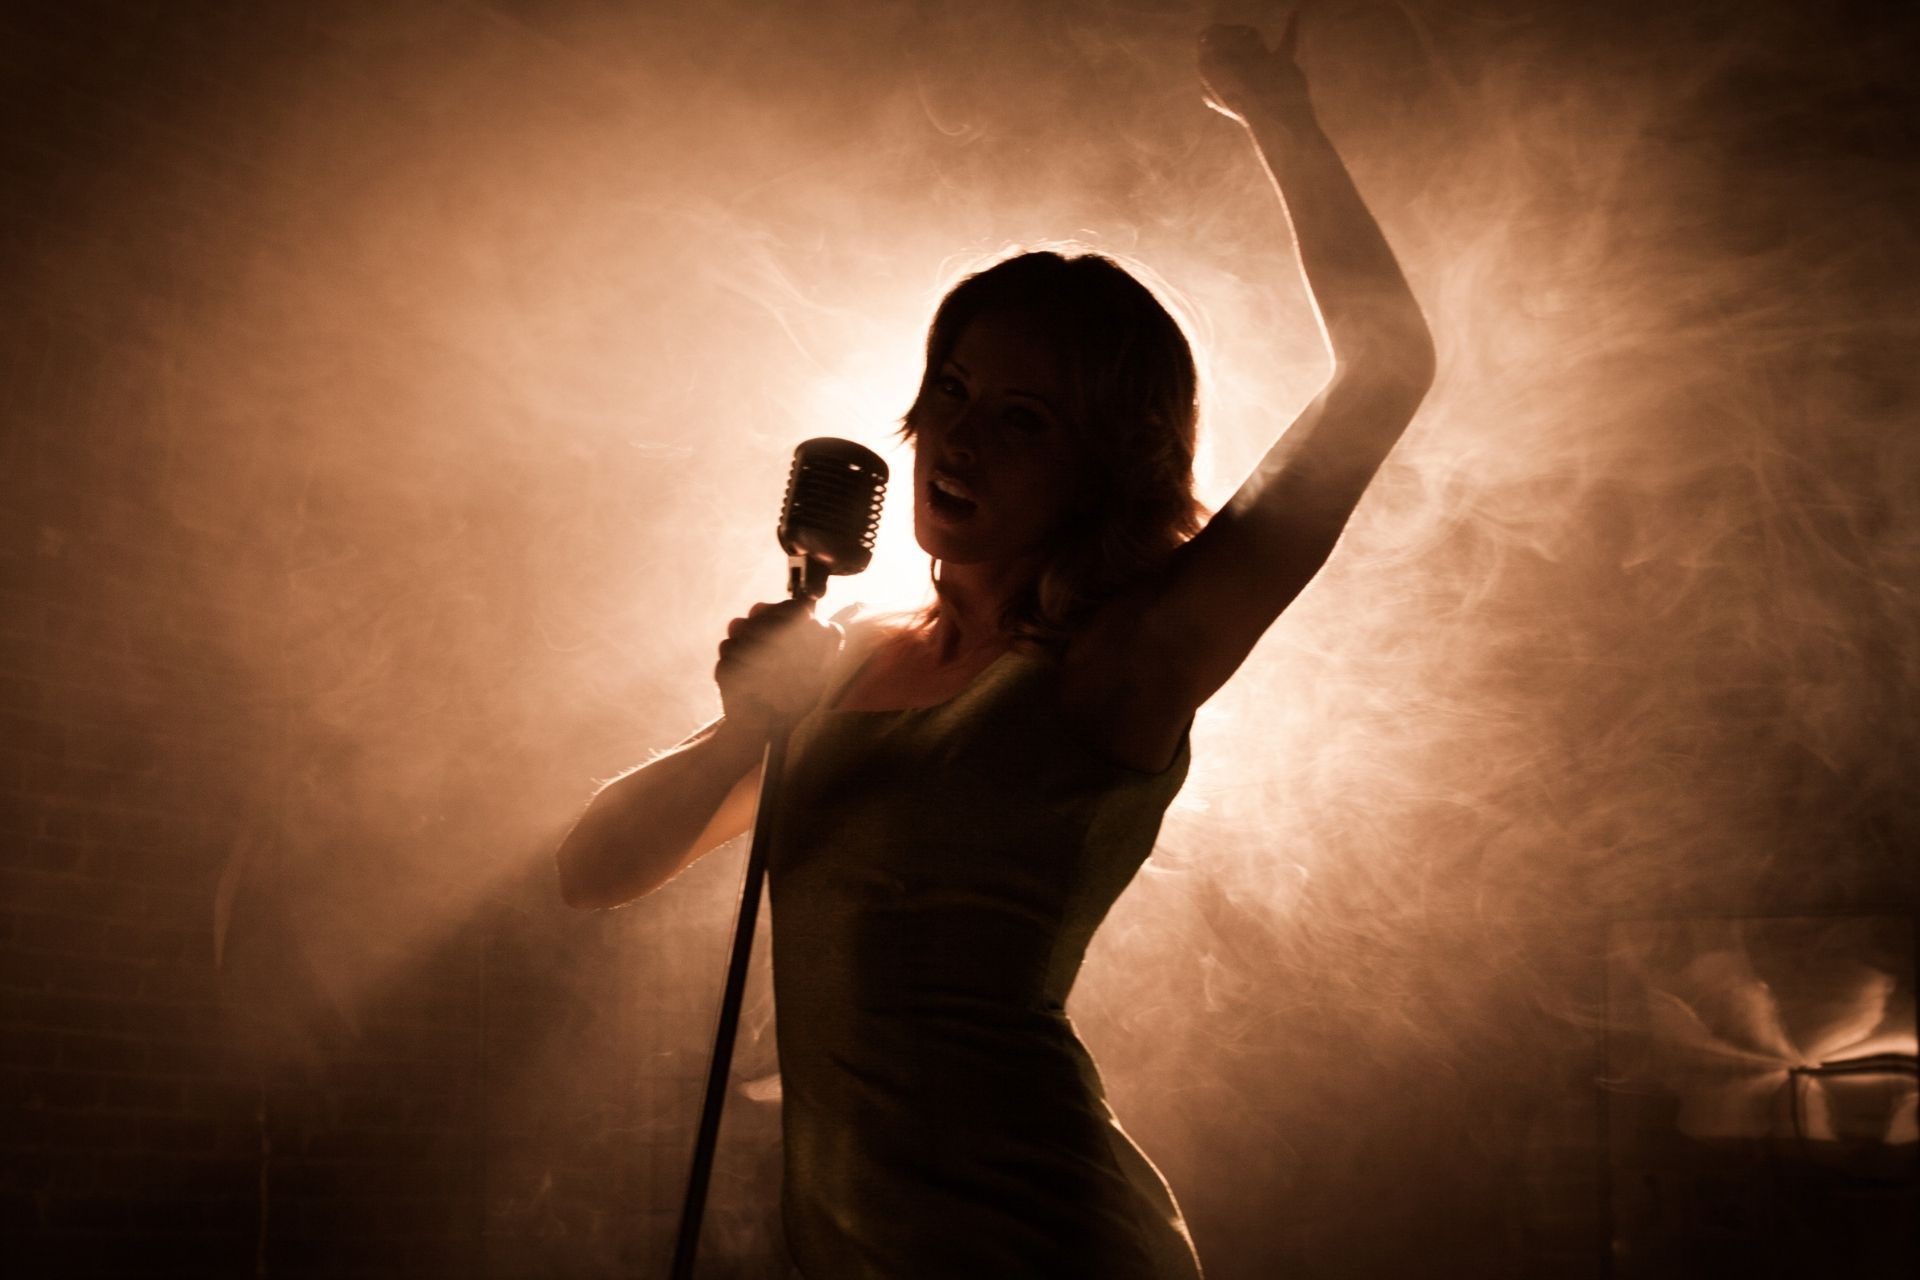 A silhouette of a woman singing into a microphone